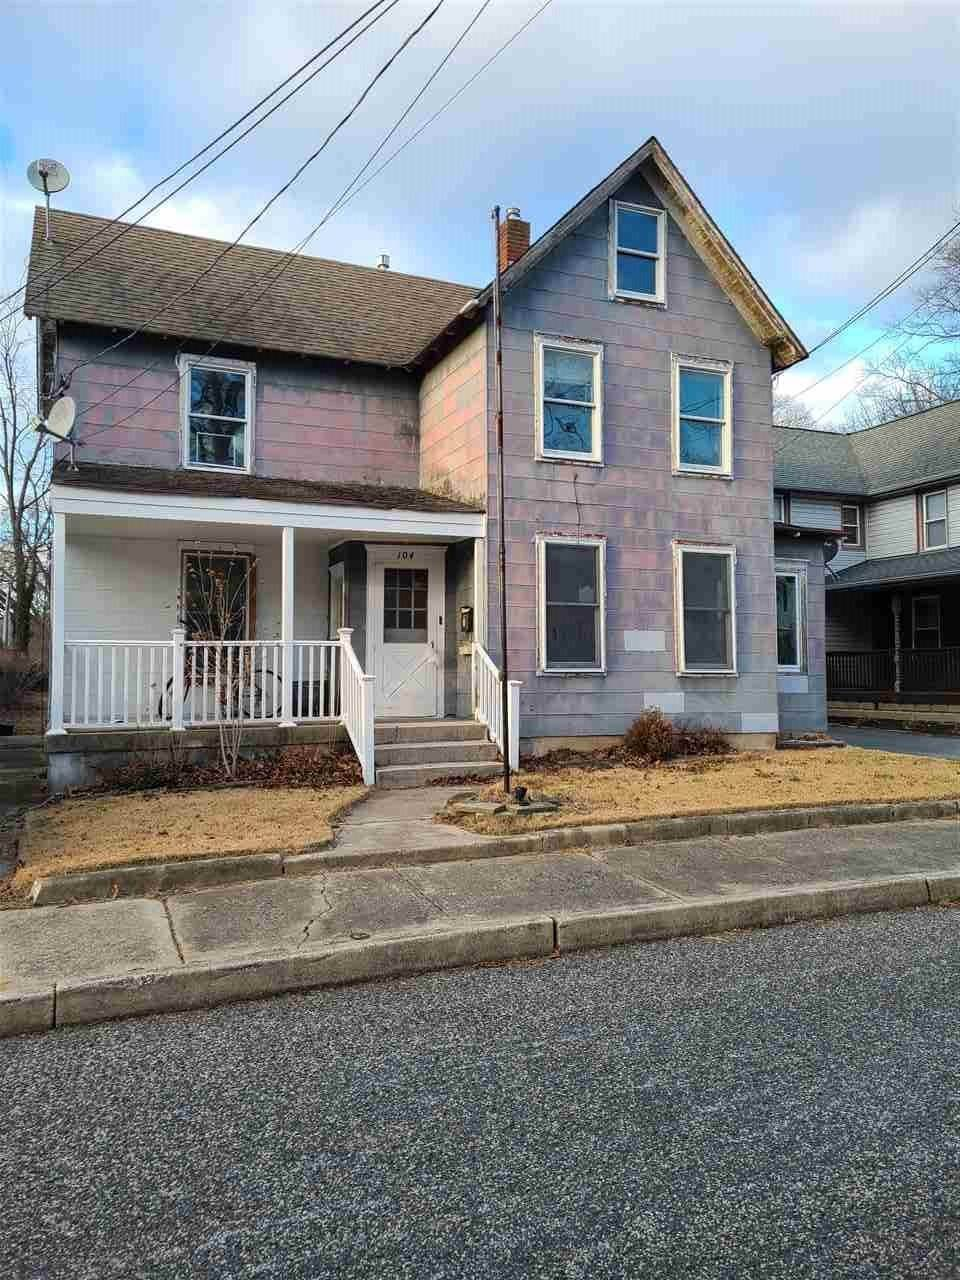 Multi-Family Homes for Sale at 104 Evergreen Avenue Glassboro, New Jersey 08071 United States